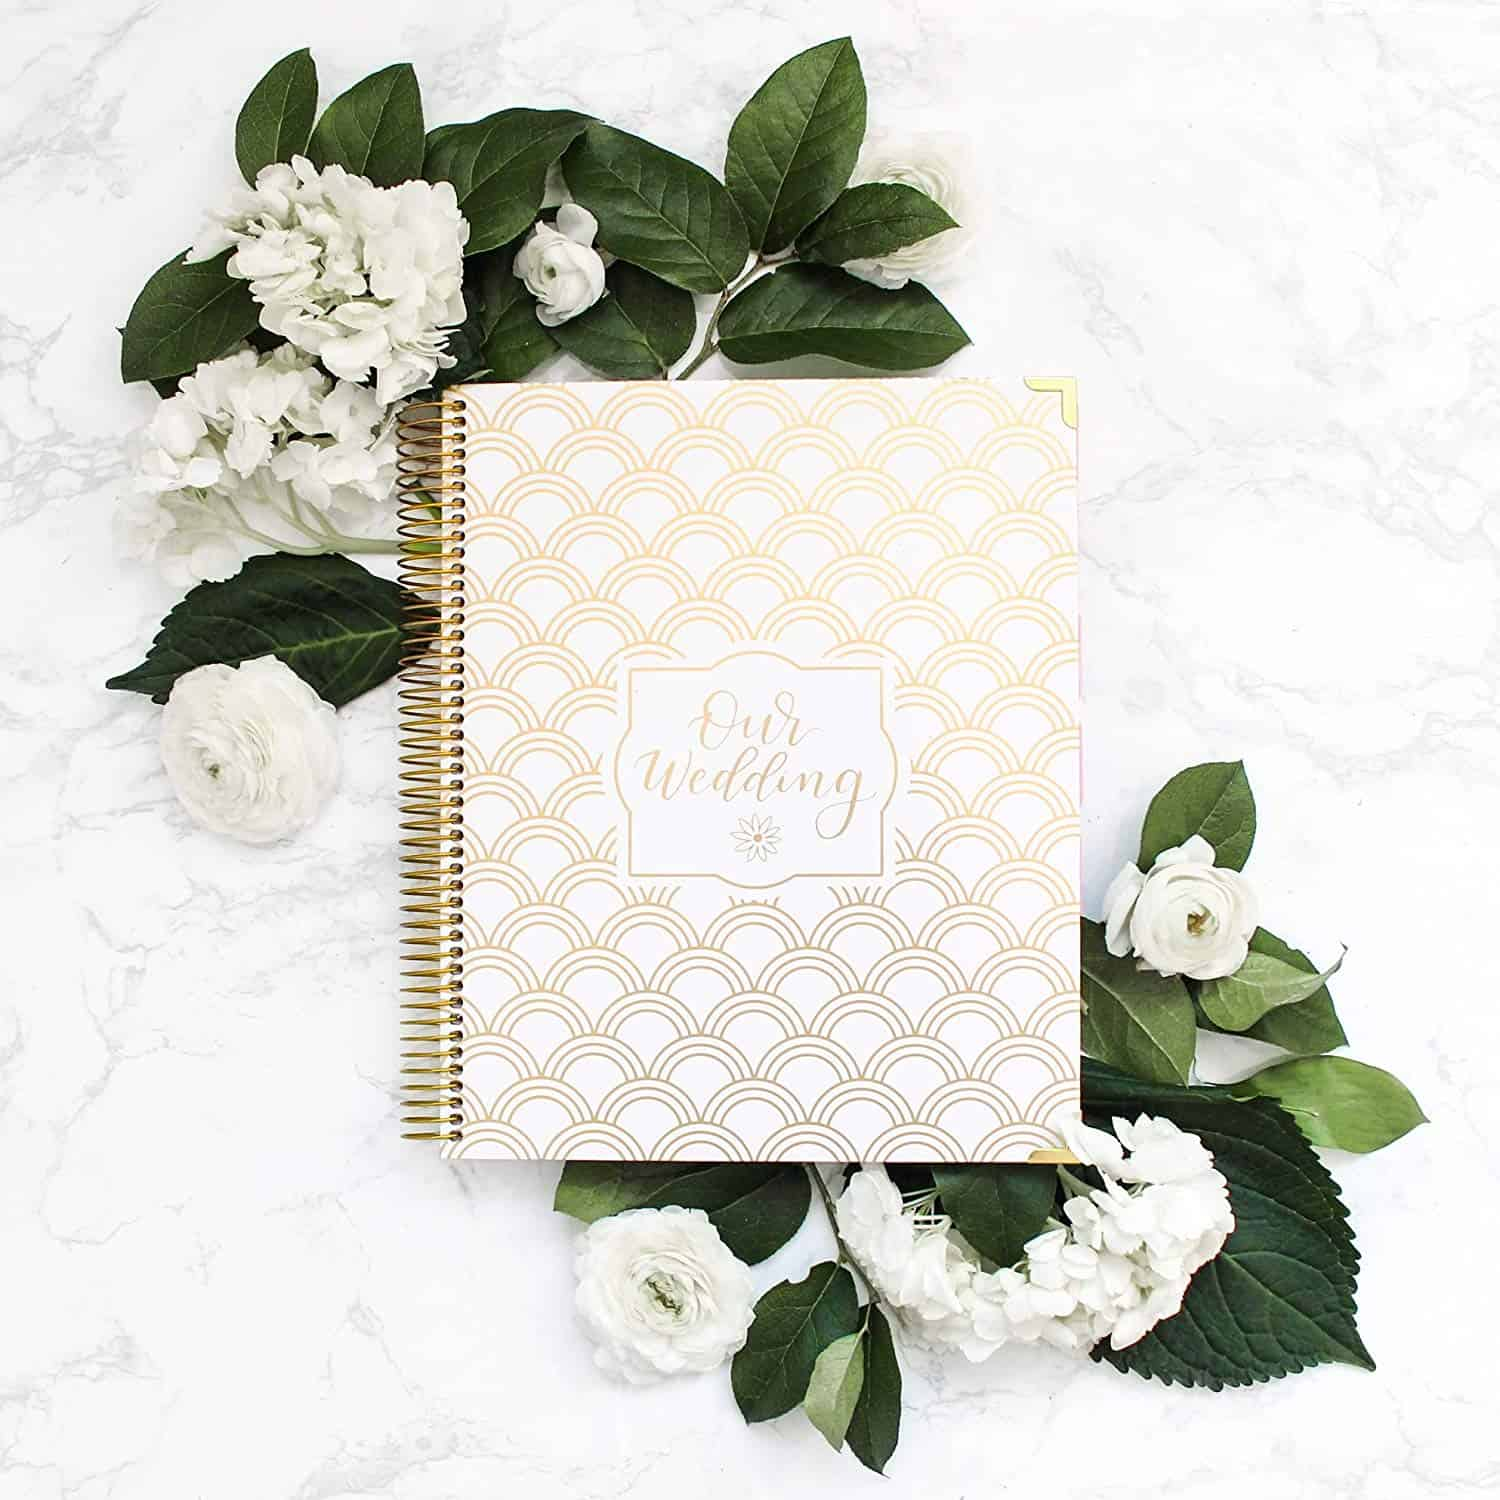 Gold Foil Scallop Hard Cover Wedding Planner Books and Organizers for Brides Engagement Gift Gold Foiling Bridal Planners